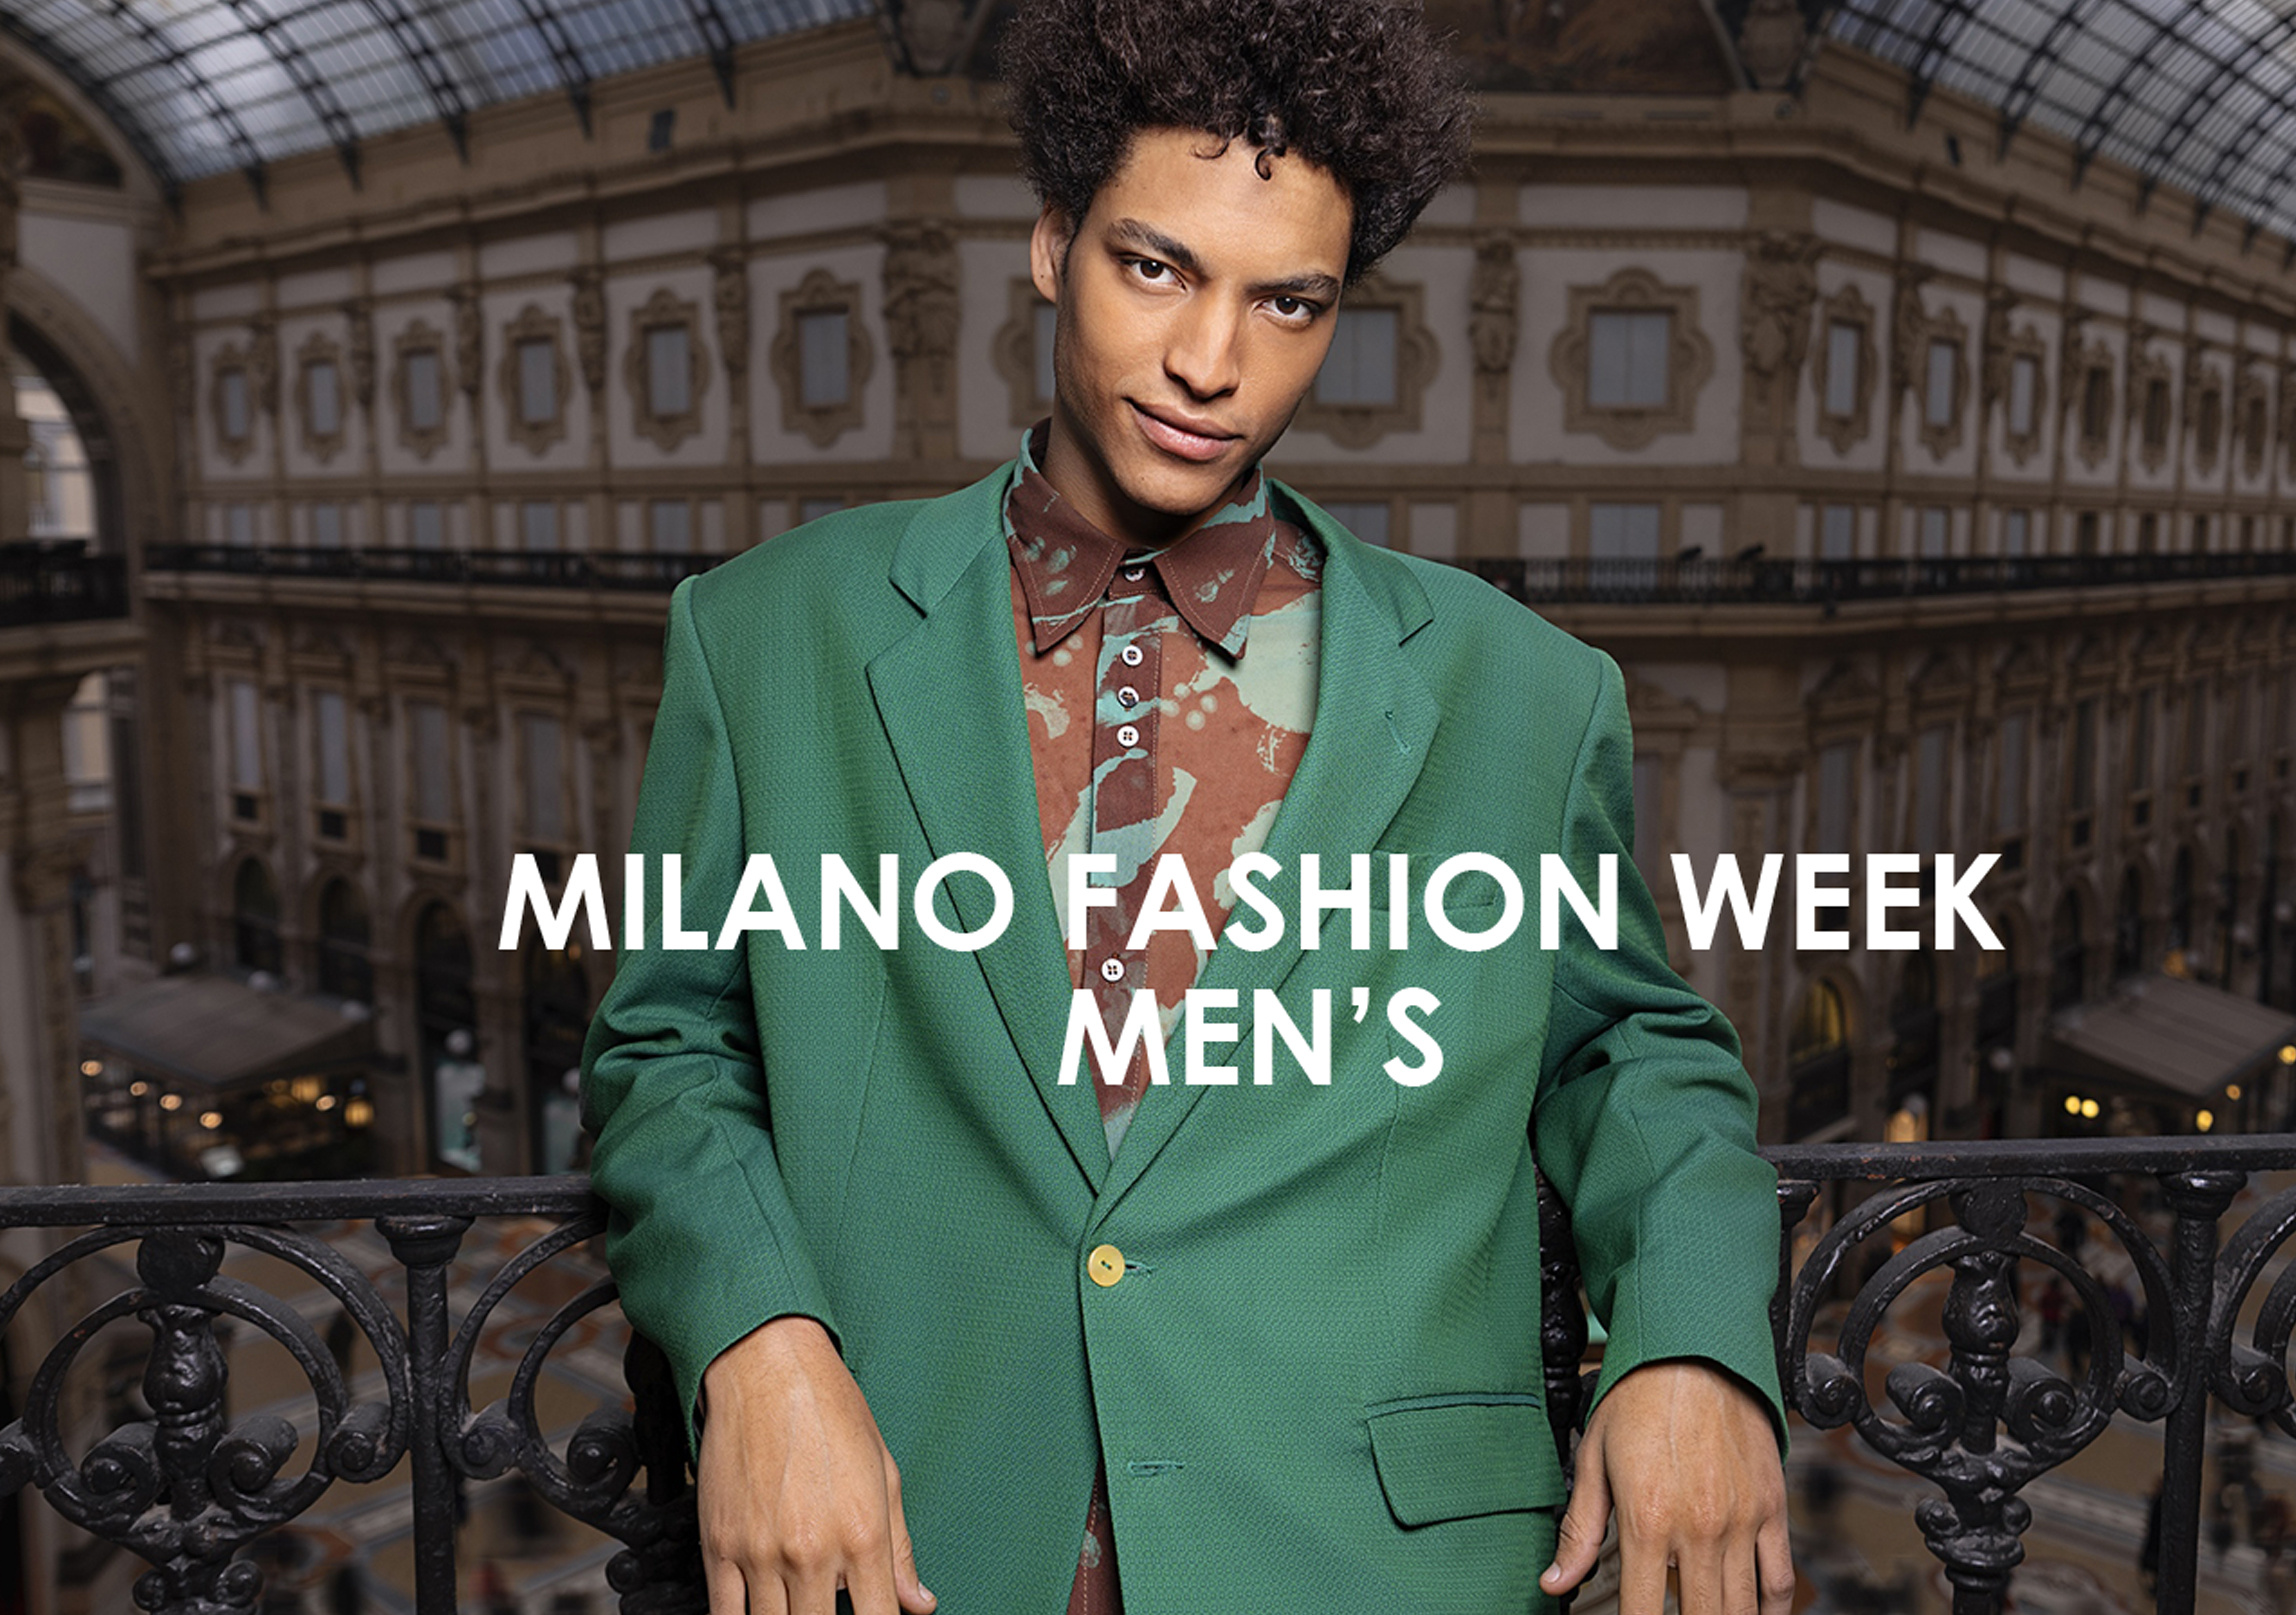 Milan Men's Fashion